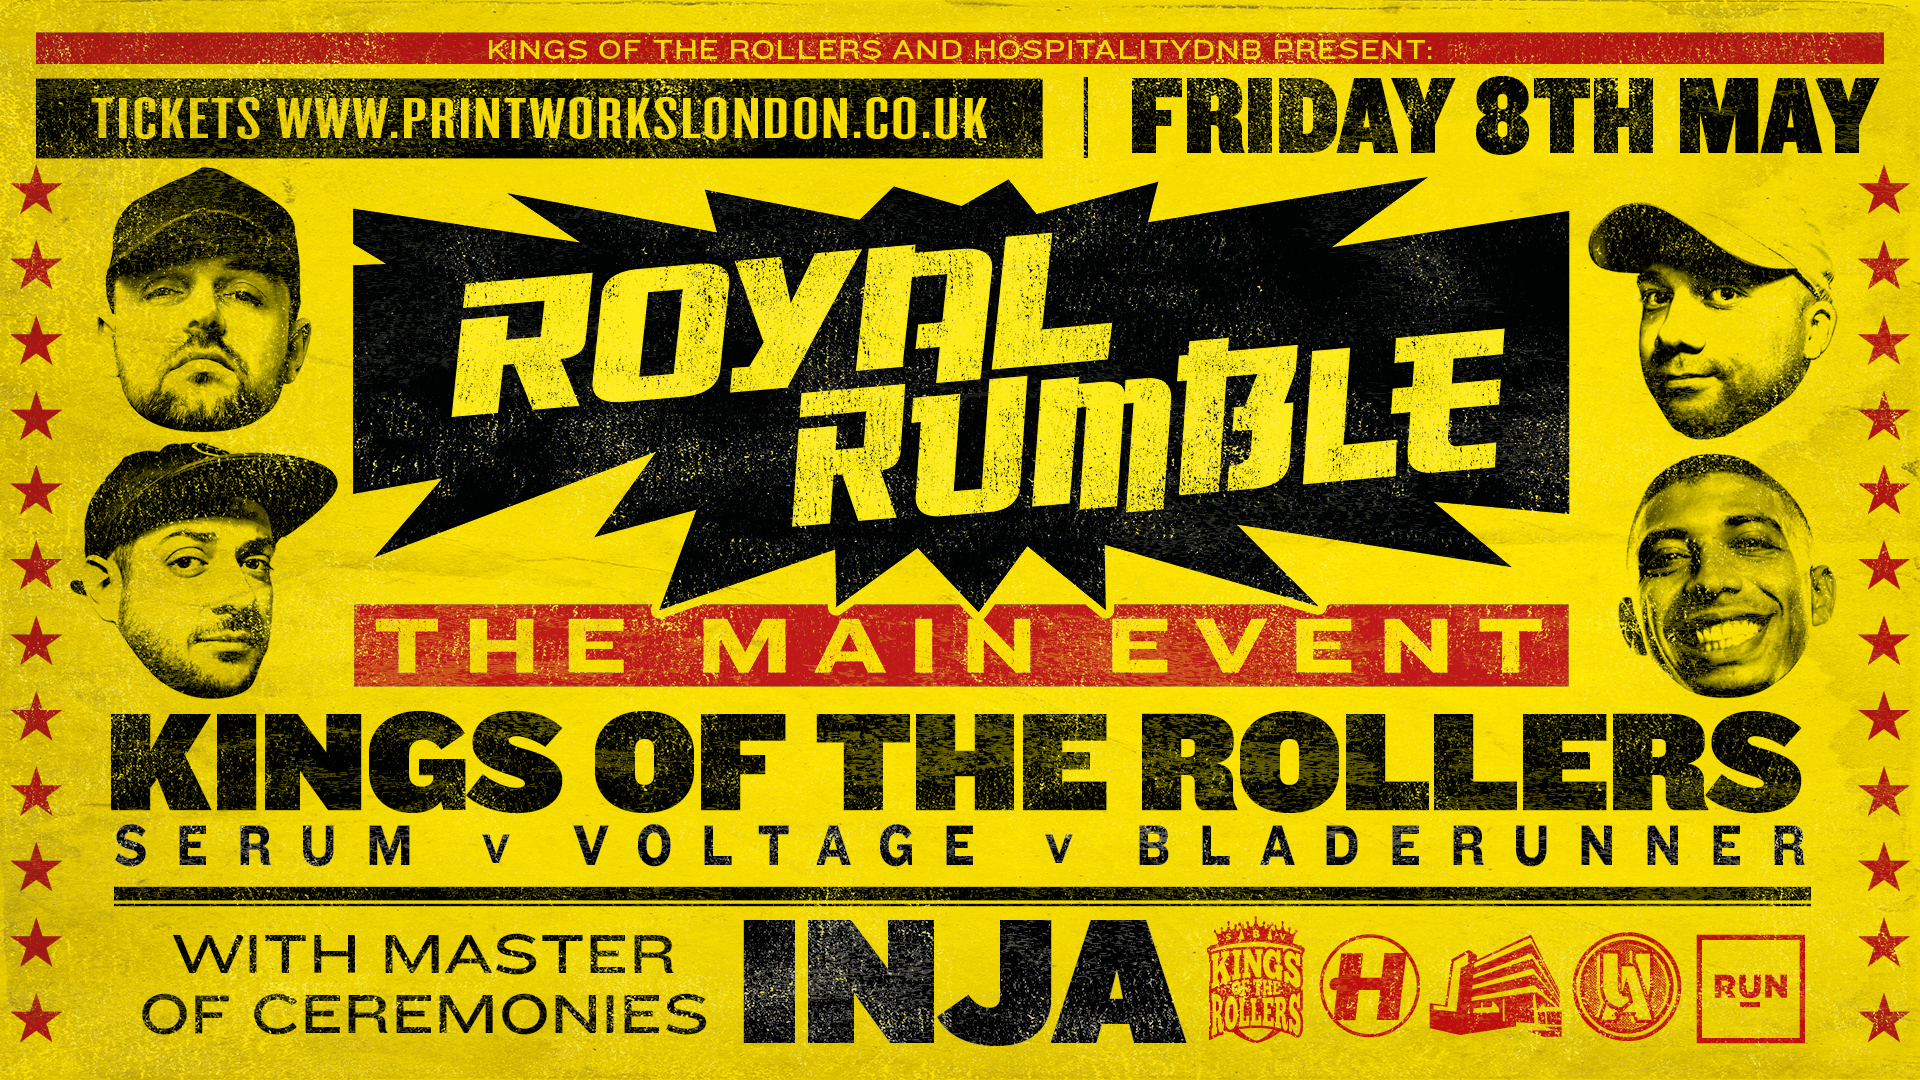 Kings Of The Rollers - Royal Rumble: The Main Event